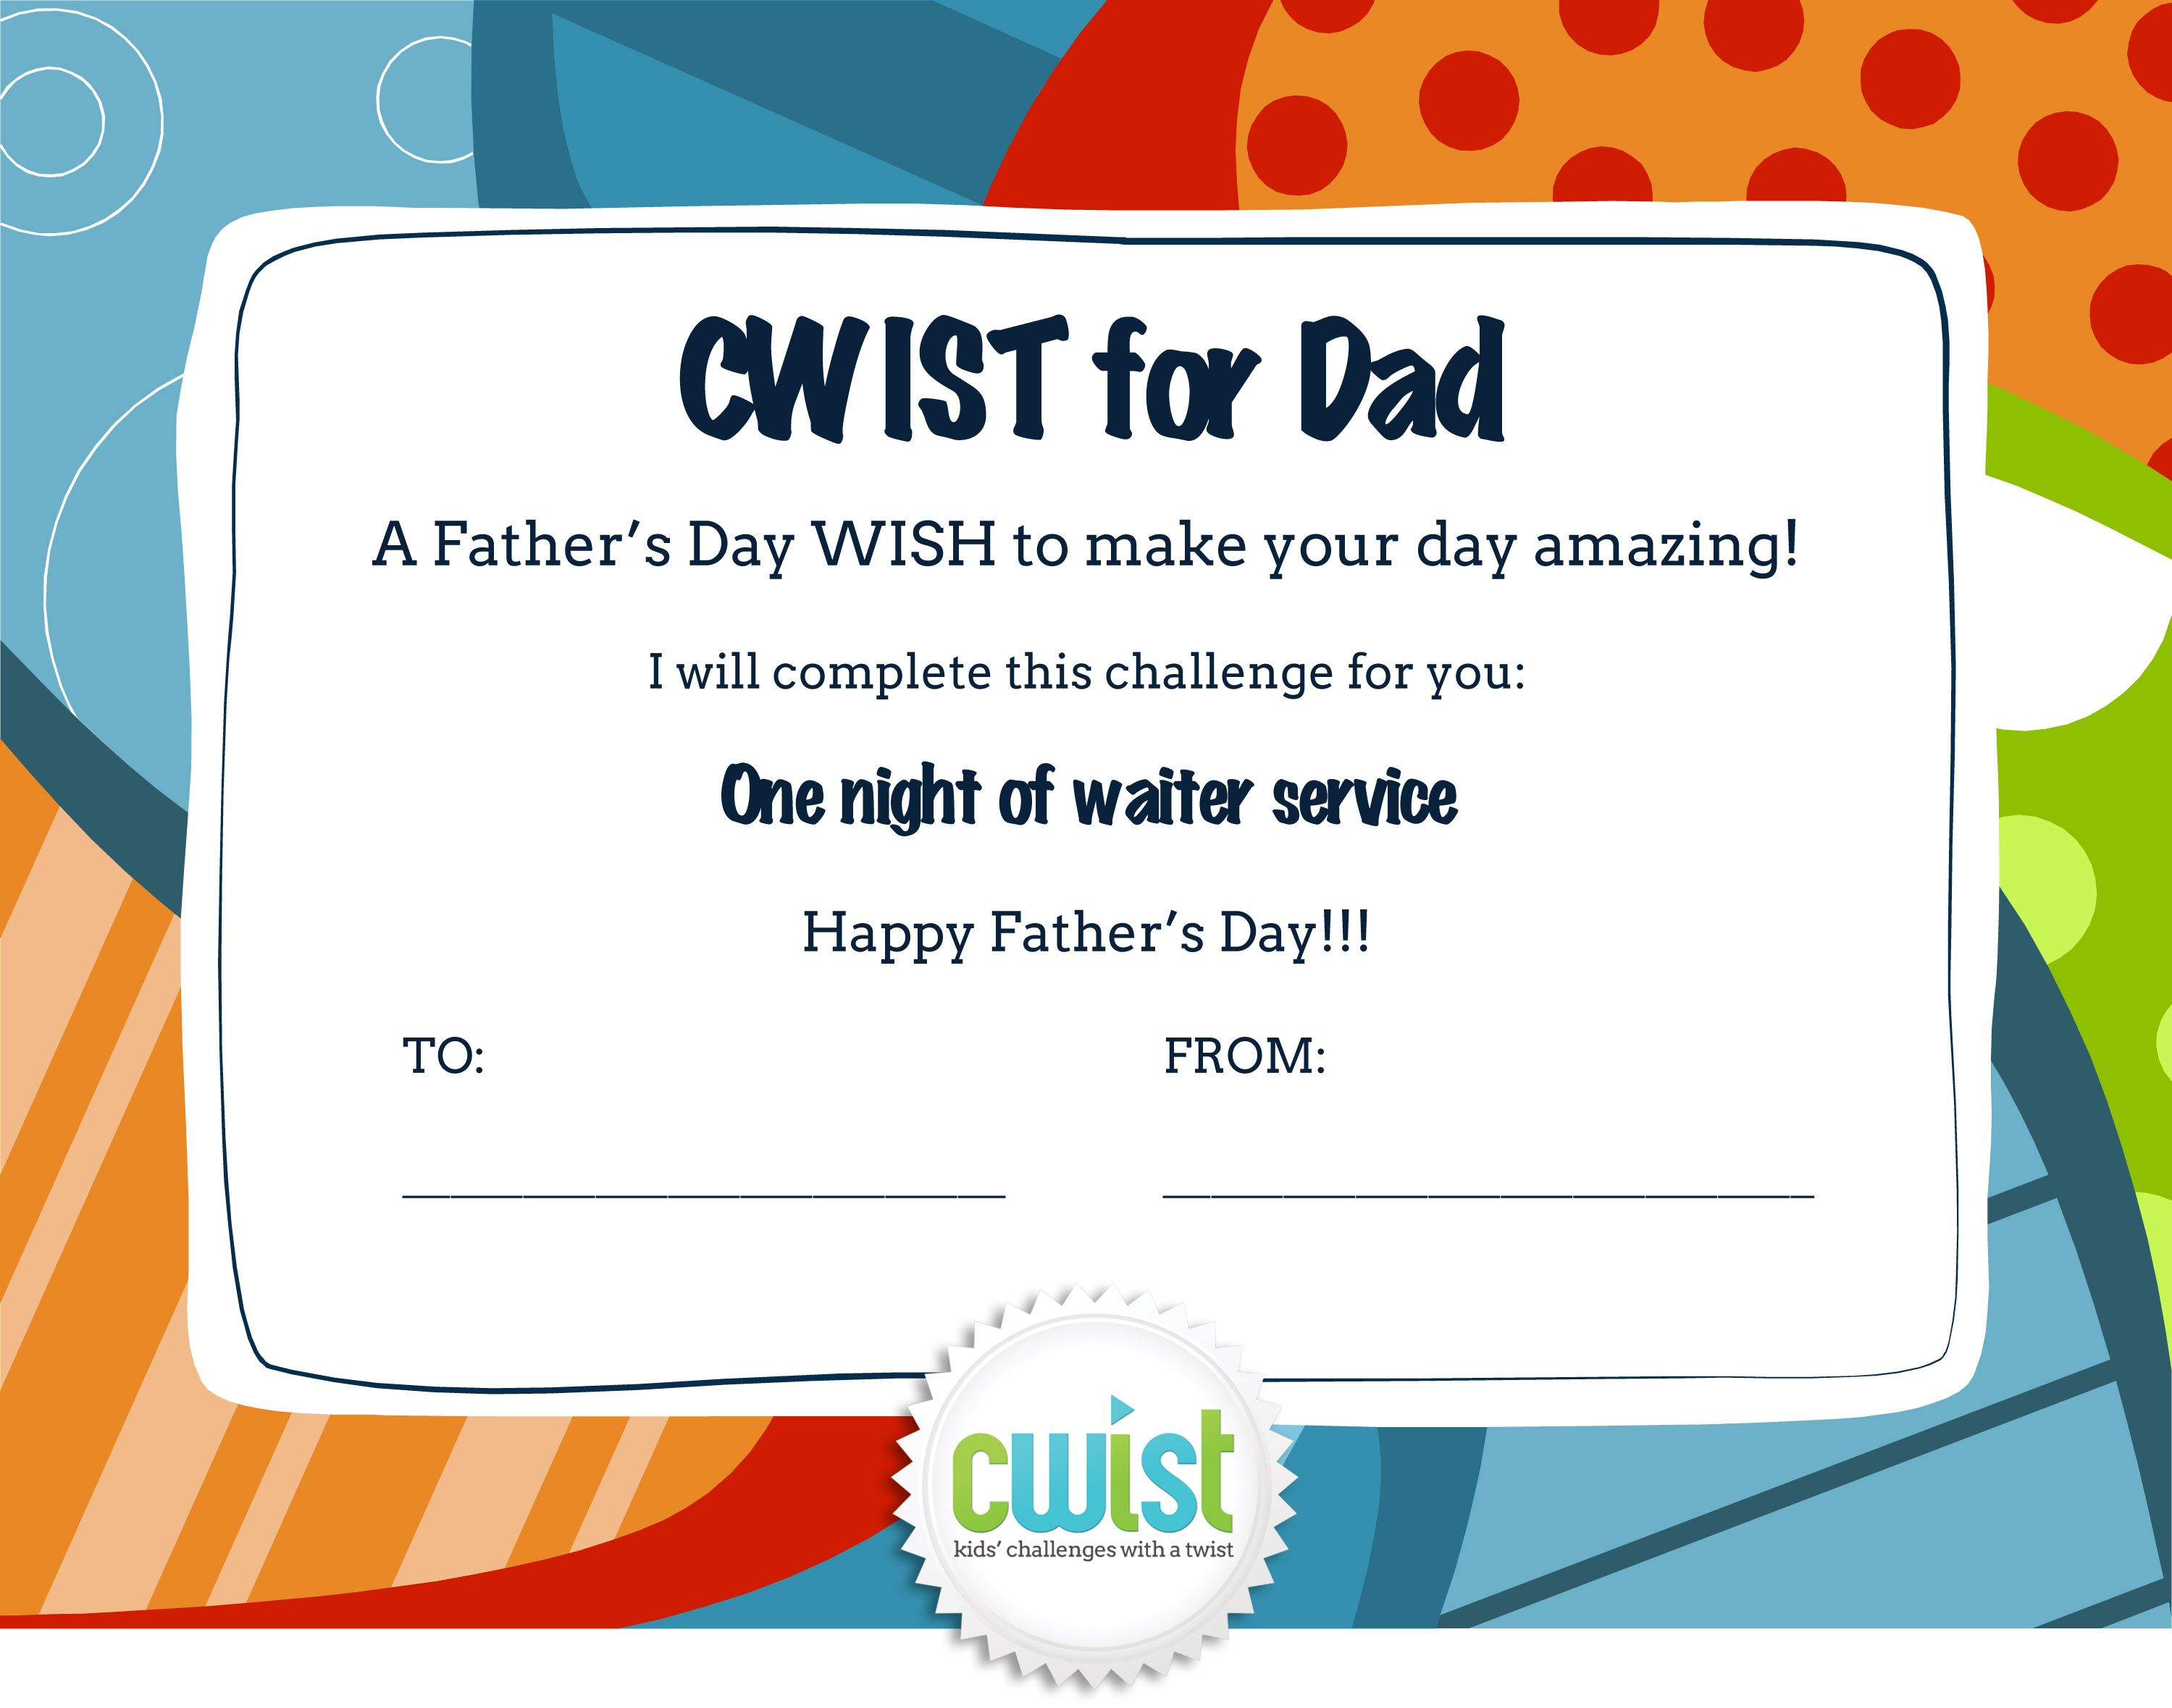 A Father's Day cwist for Dads who are tired after work. Kids can print out this coupon and wait on Dad for one night! #fathersday #kidsactivities